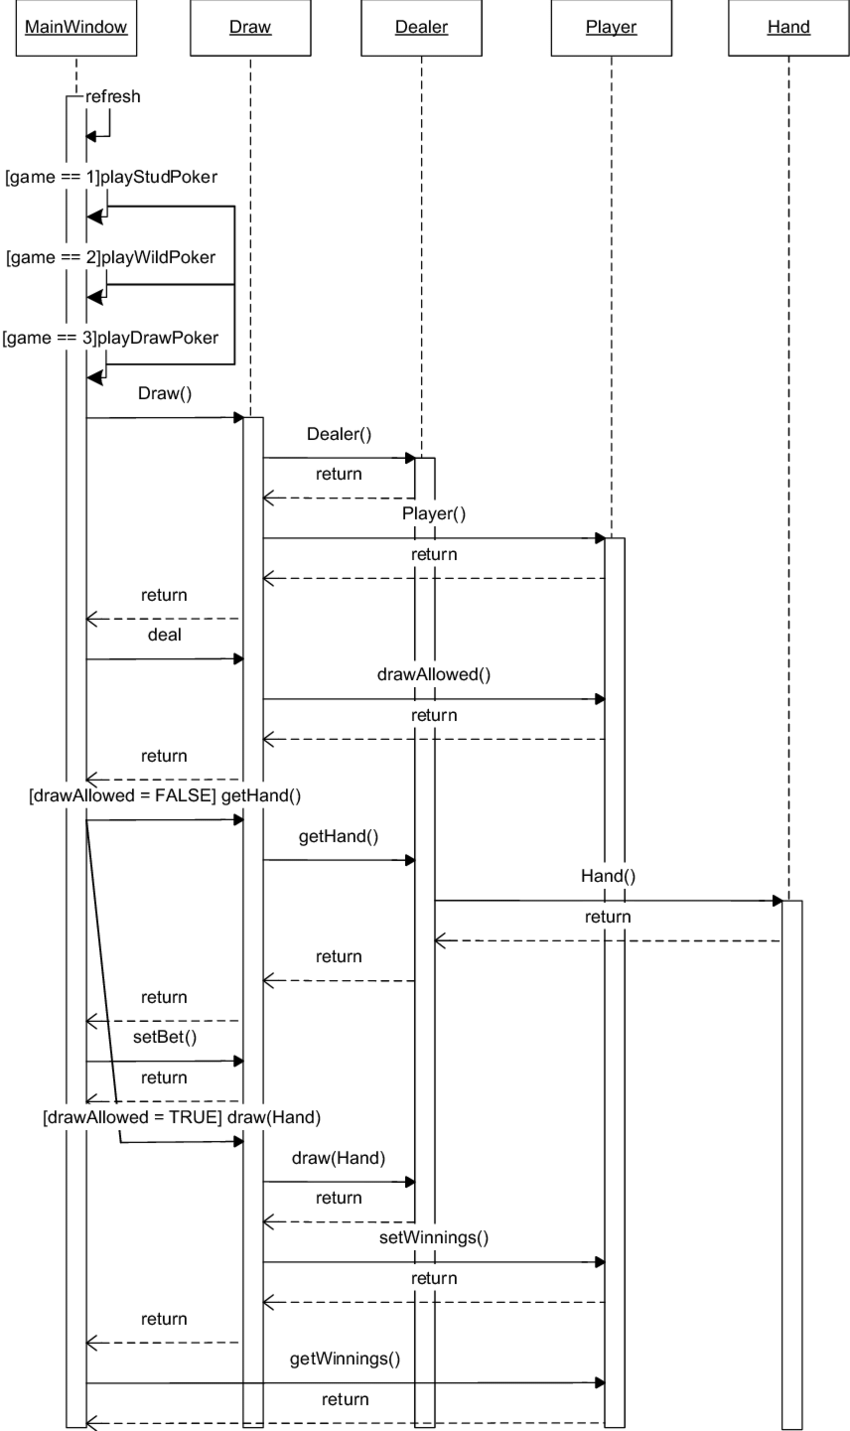 medium resolution of a uml sequence diagram for a draw poker game